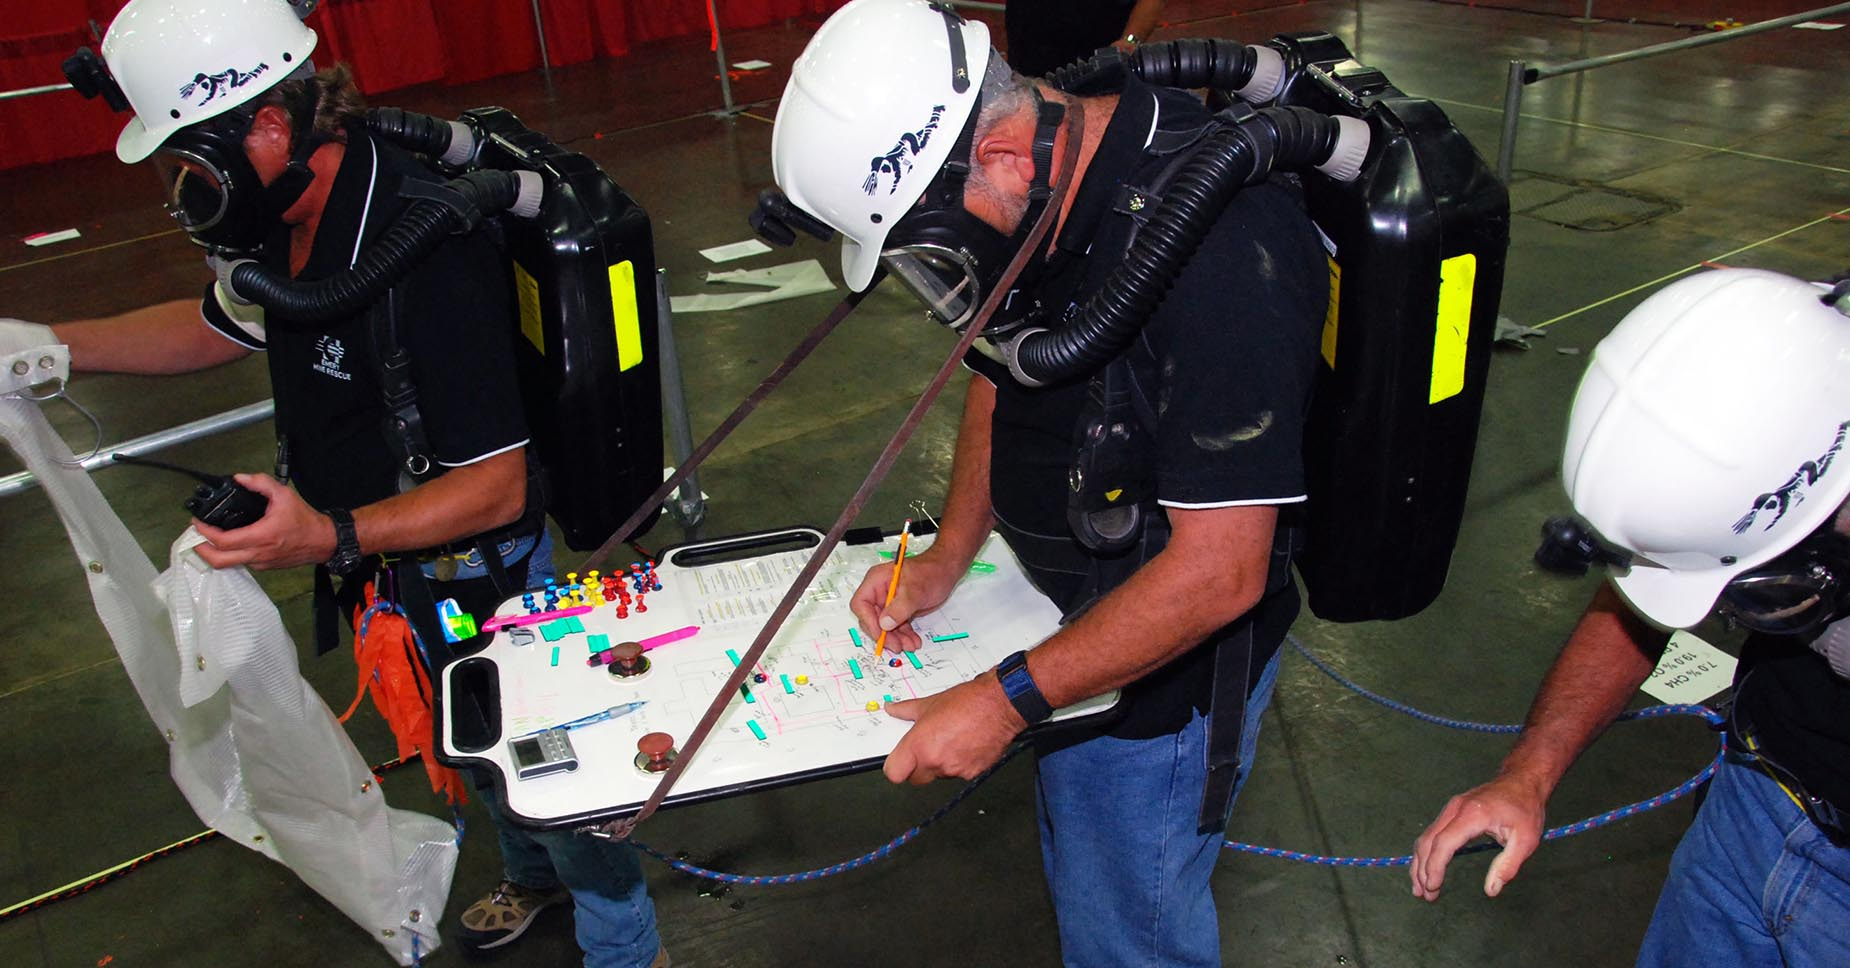 Mine rescue instruction guides